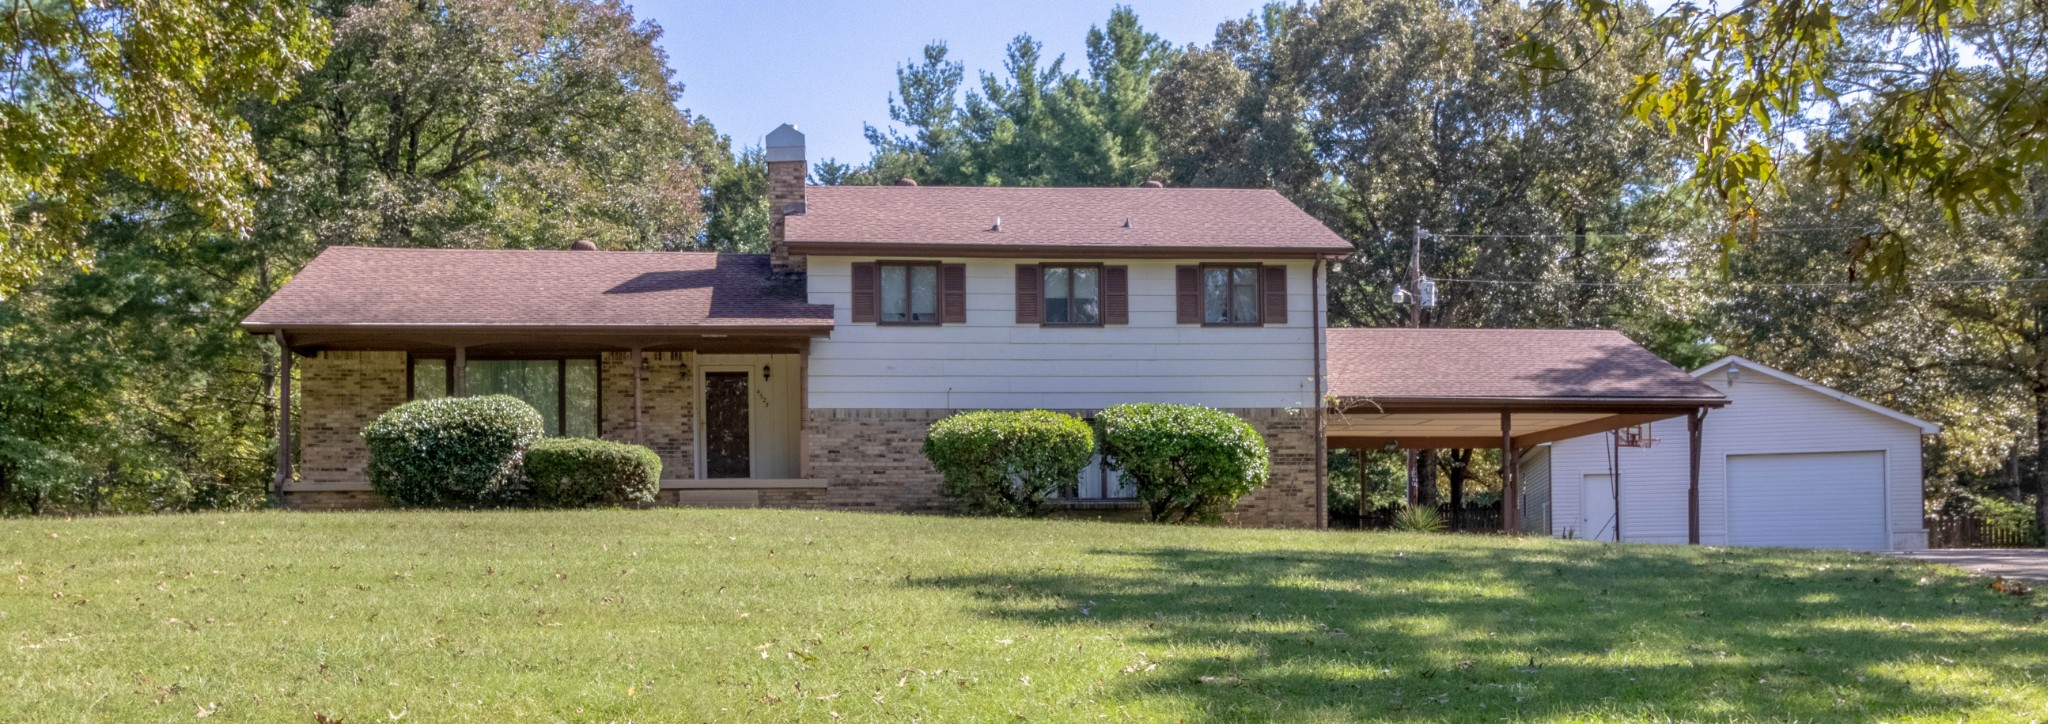 4525 Louise Creek Rd Property Photo - Cunningham, TN real estate listing